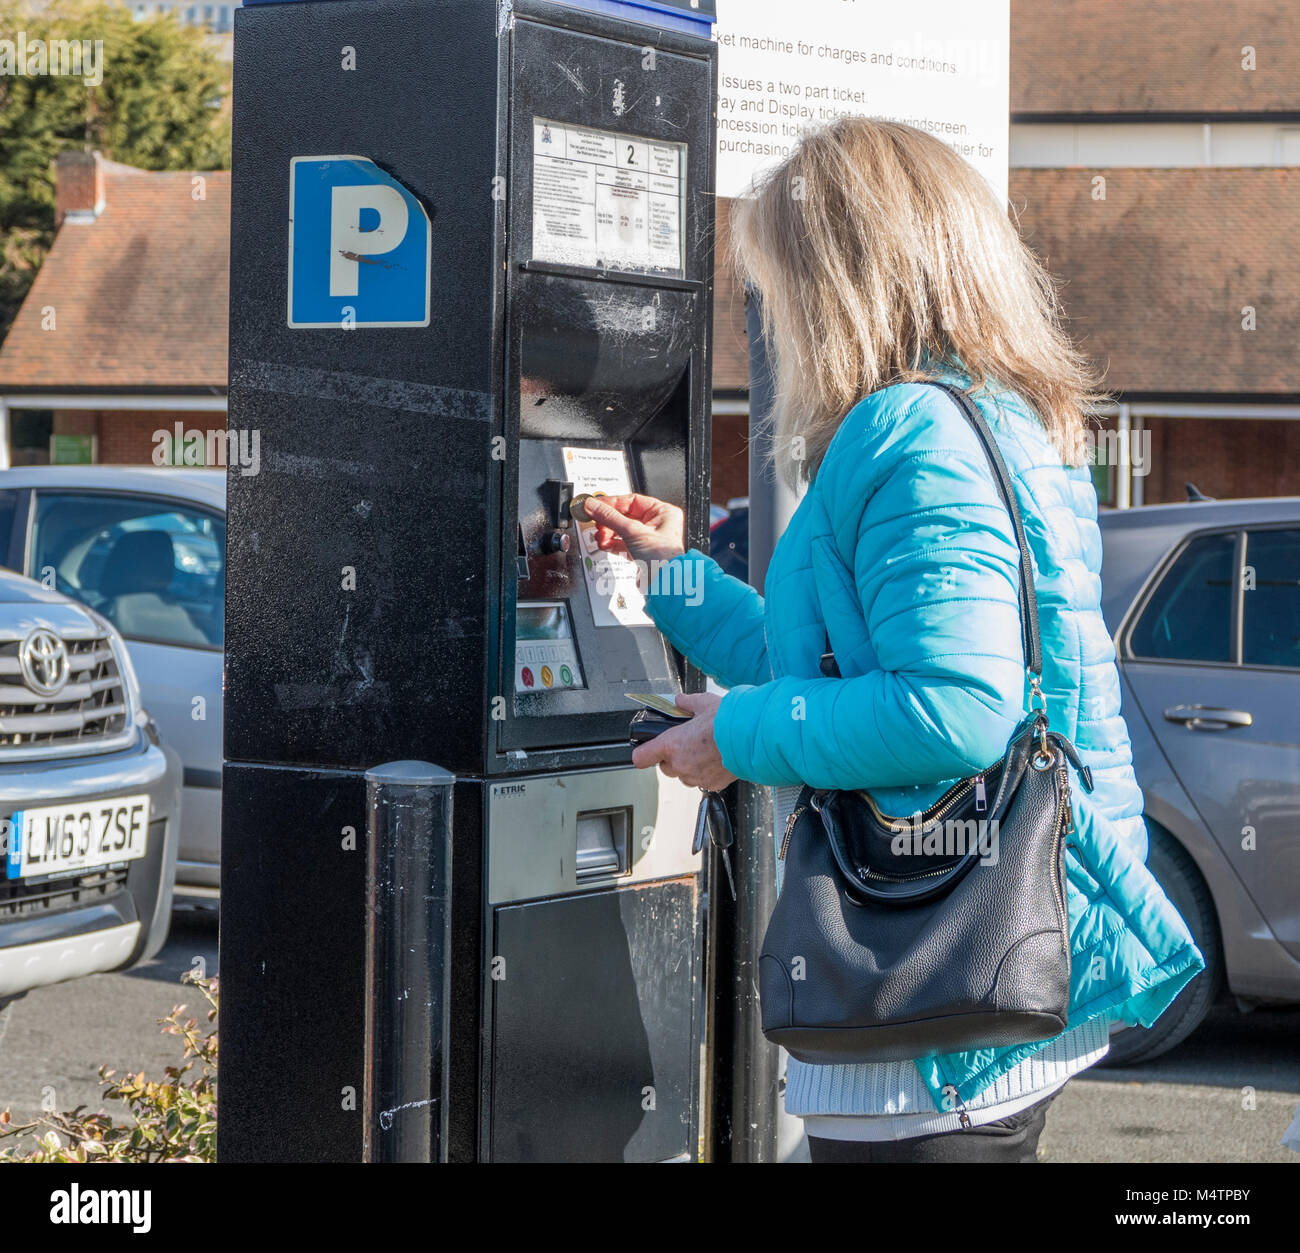 Middle aged woman standing in car park inserting coin at ticket machine in the Ruislip branch of Waitrose supermarket, - Stock Image